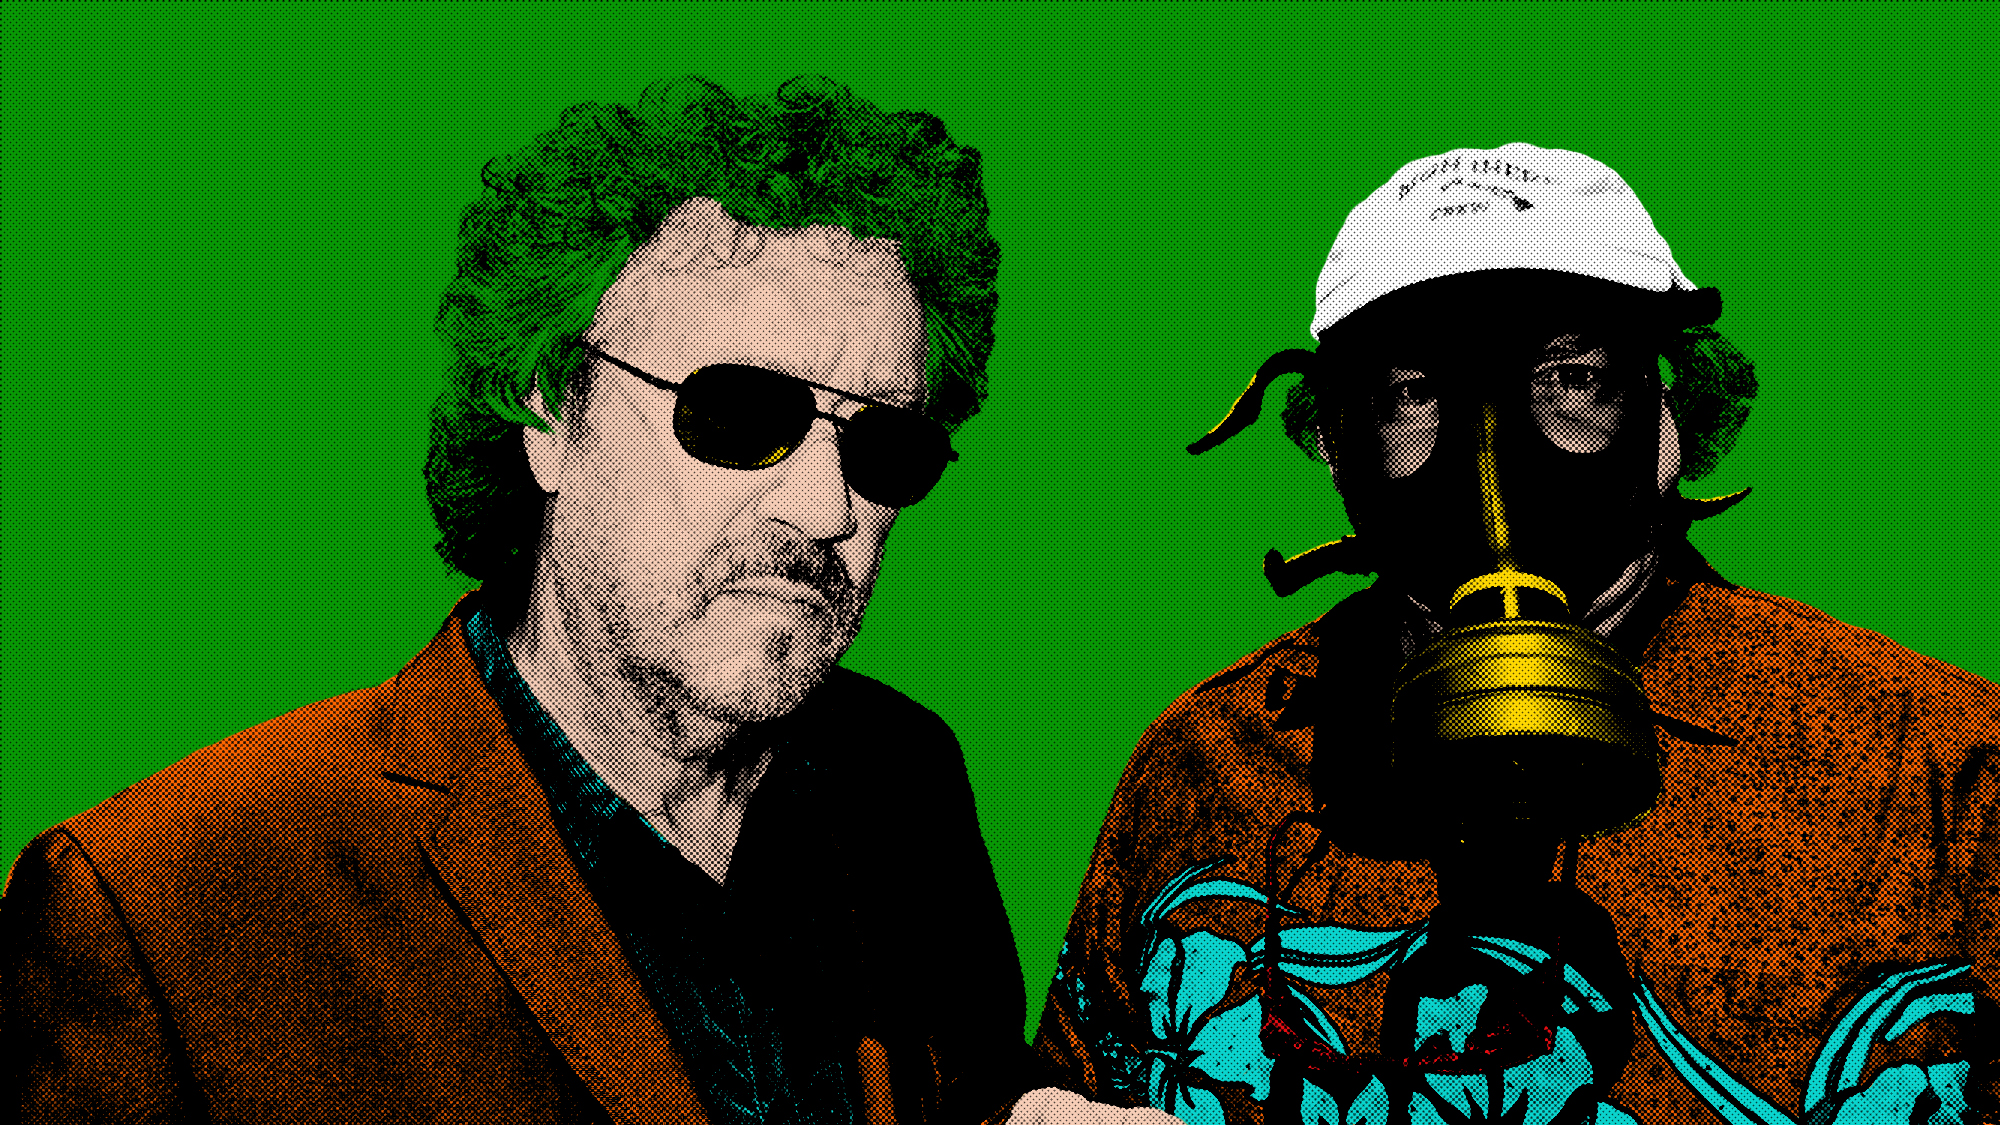 Dave & Roland in the style of AndyWarhol by Deanna22 NZ